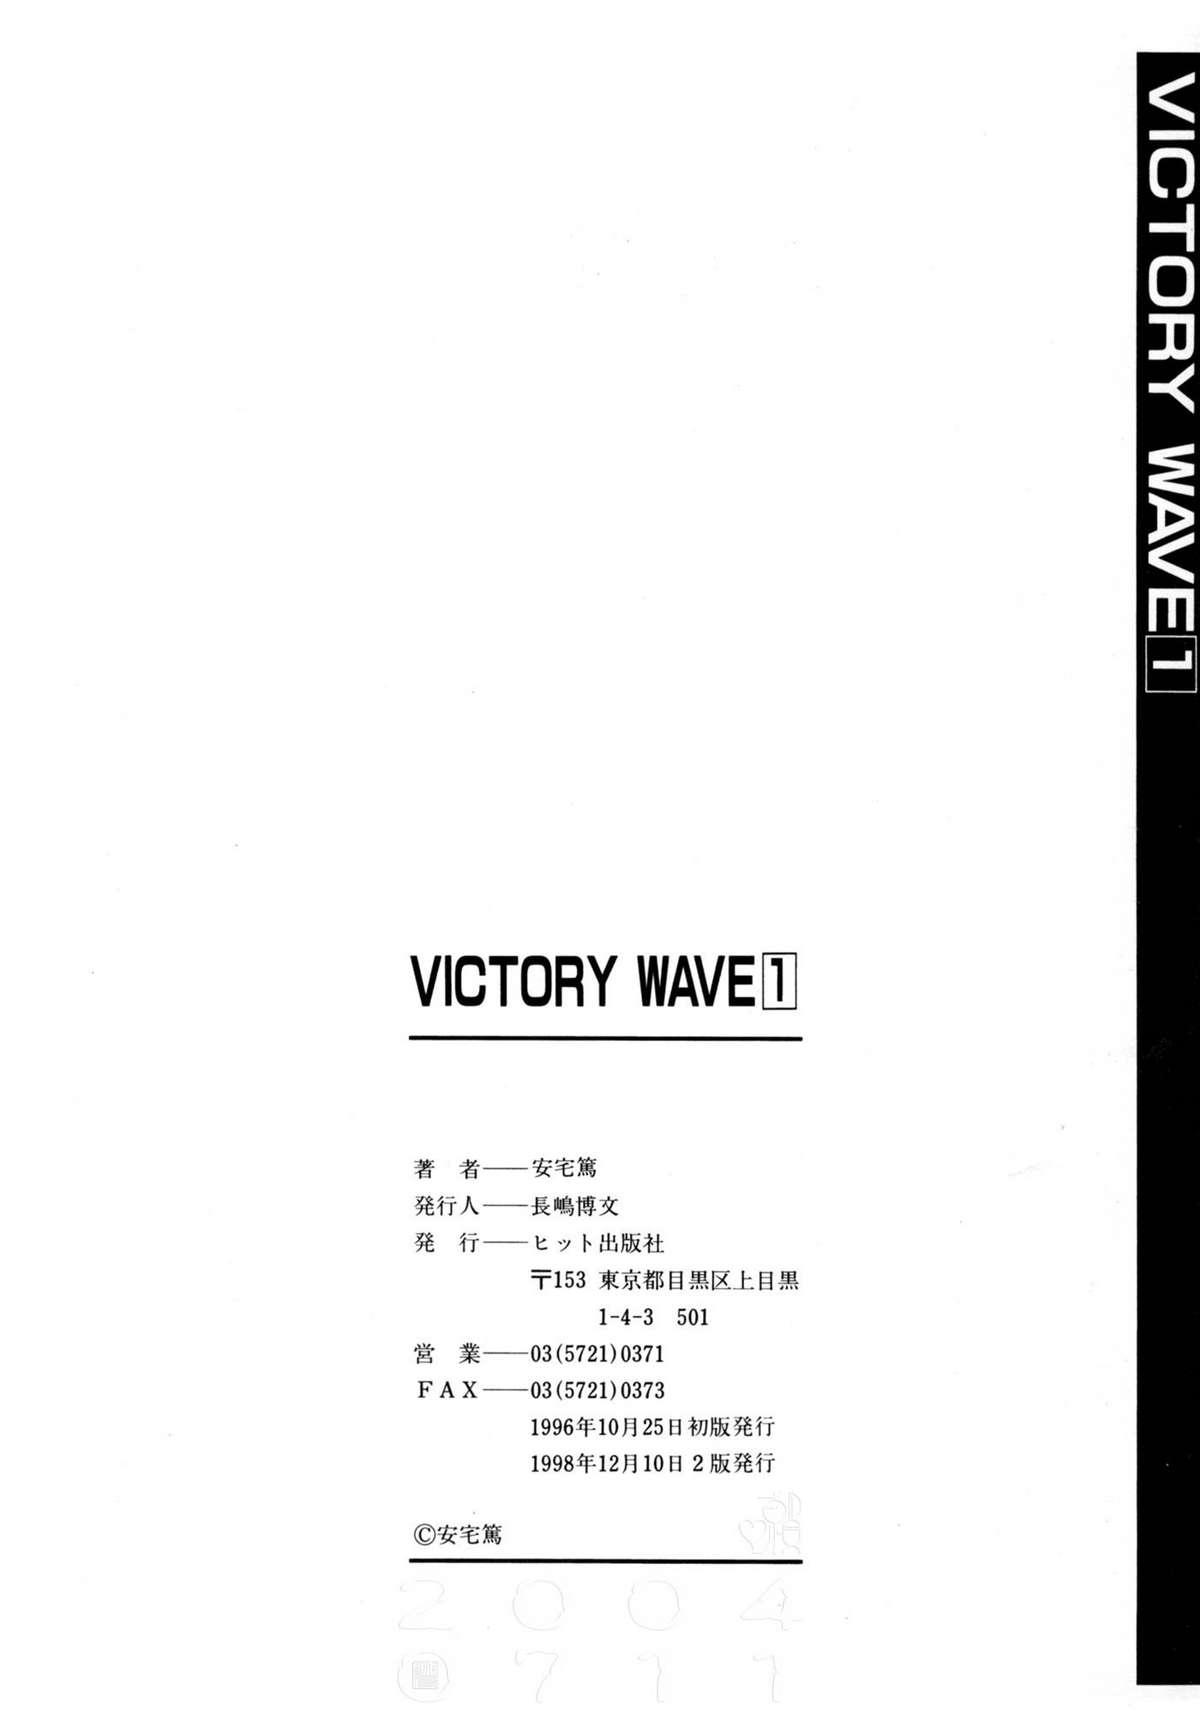 Victory Wave 1 166